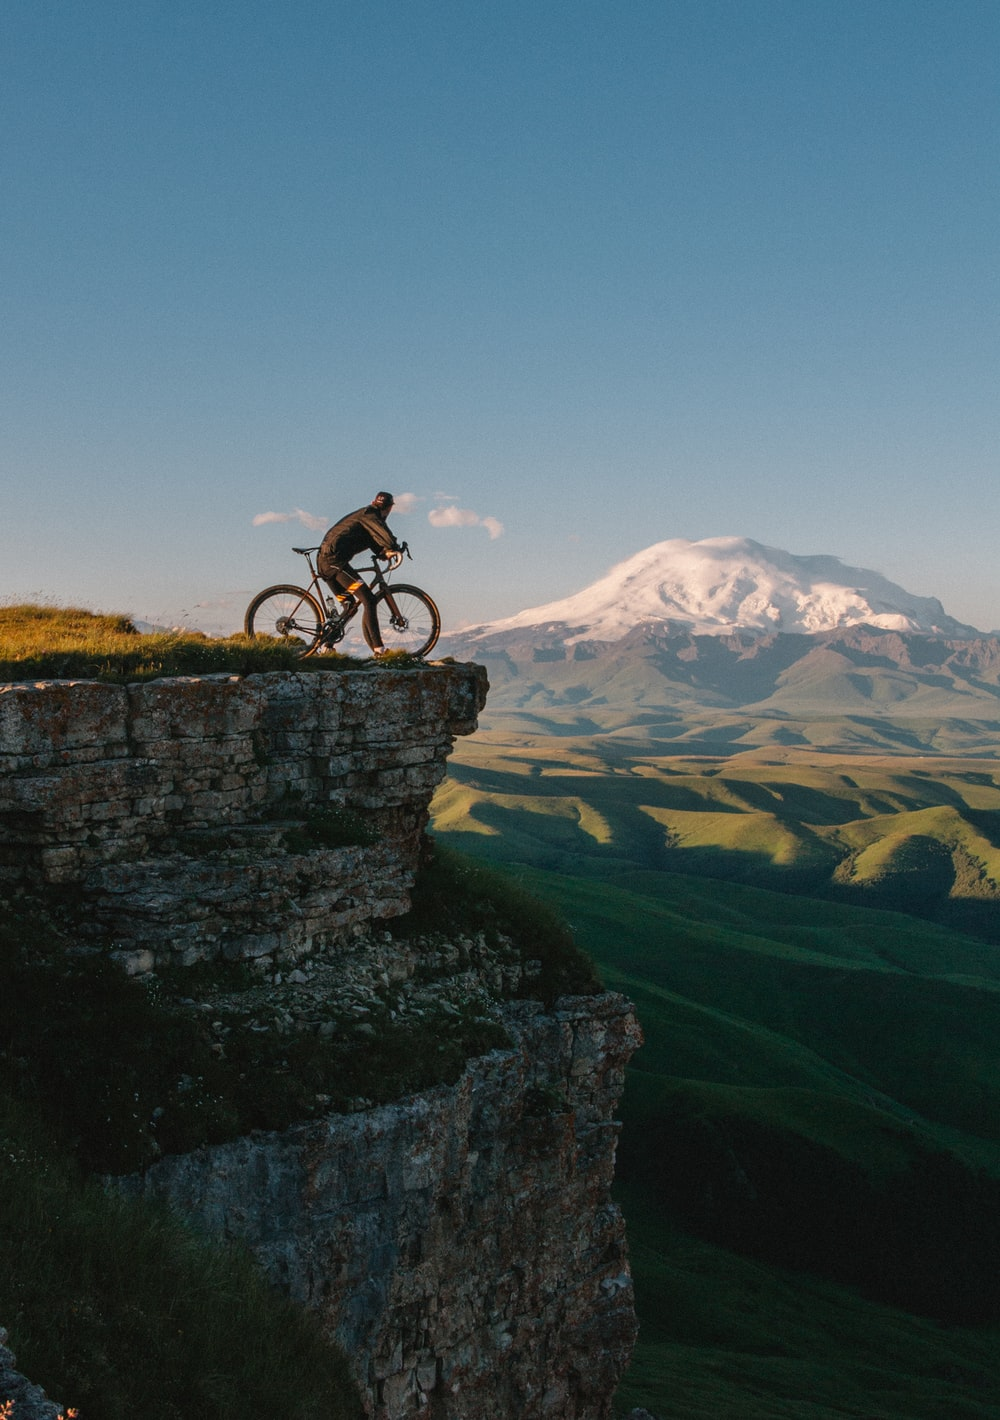 100 Cycling Pictures Hd Download Free Images Stock Photos On Revo X Cosmic White Jepara Man Riding Bike Cliff At Daytime